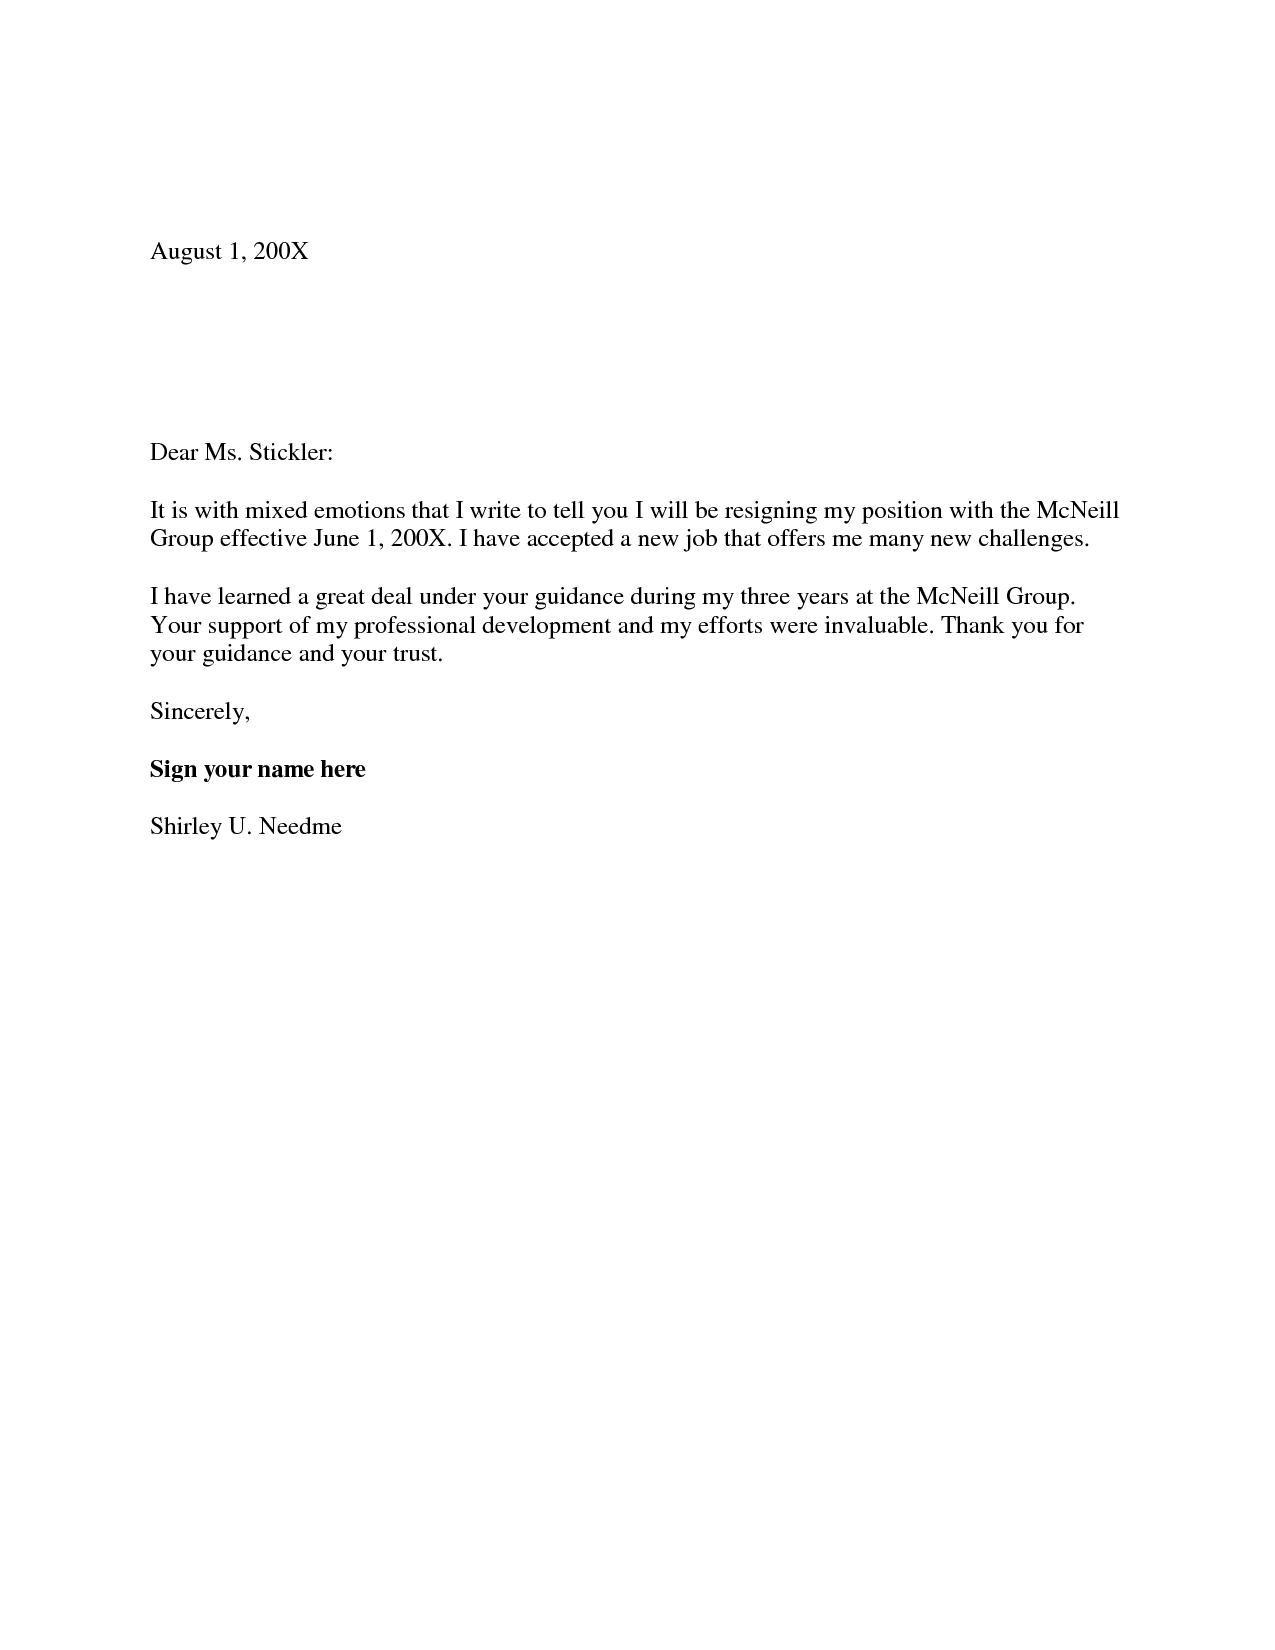 Resignation Letter Two Weeks Notice from i.pinimg.com